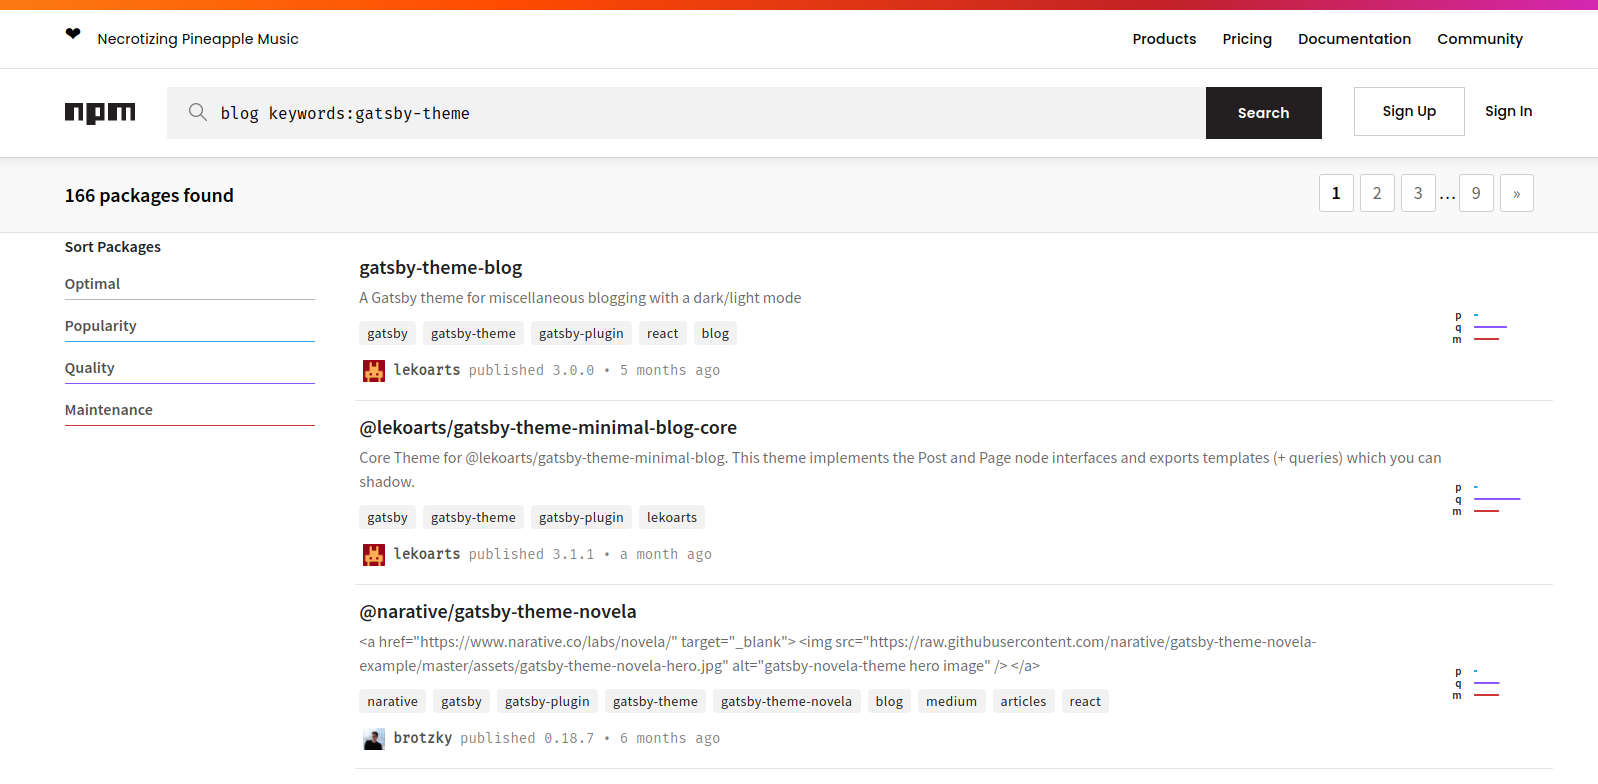 npm results page for the